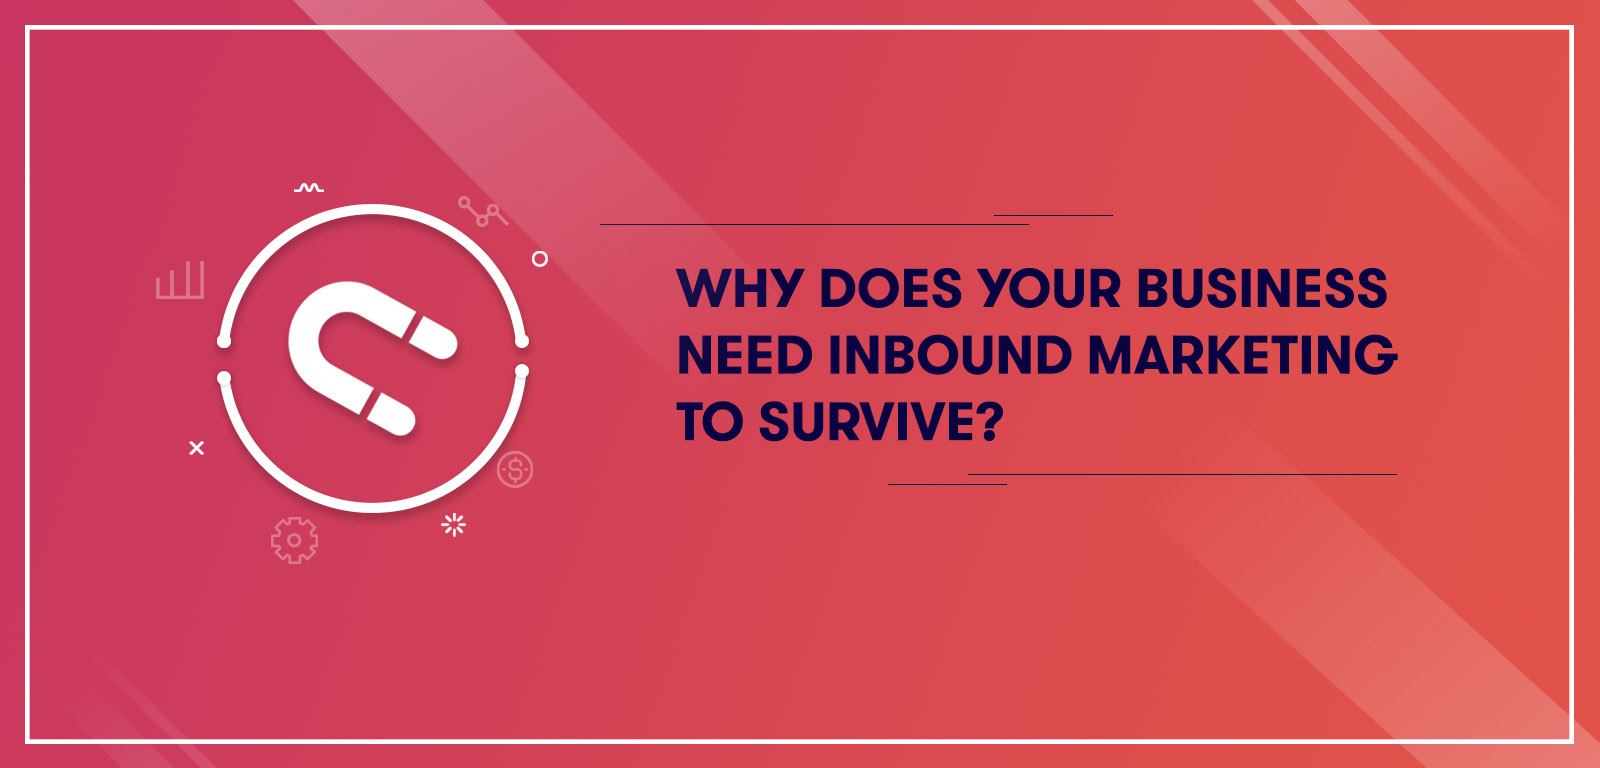 Why does your business need Inbound Marketing to survive?